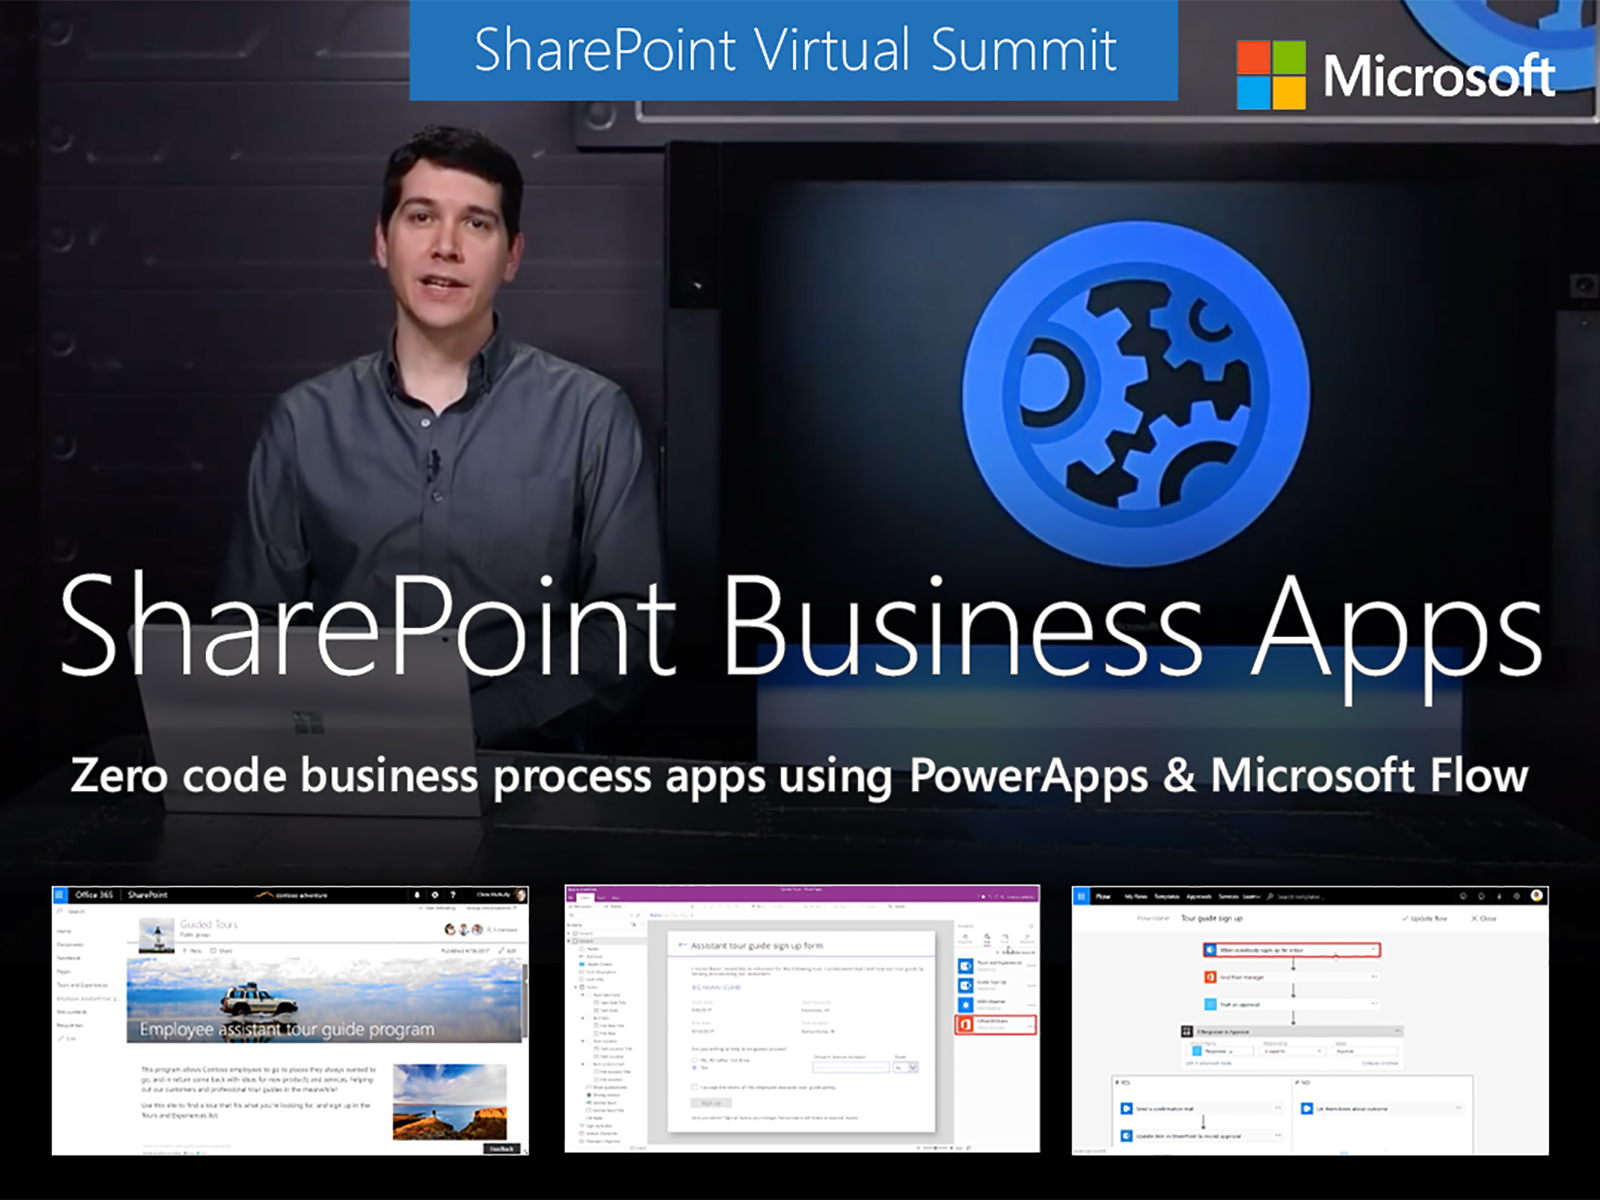 Artwork for Zero code business process apps in SharePoint with PowerApps and Microsoft Flow